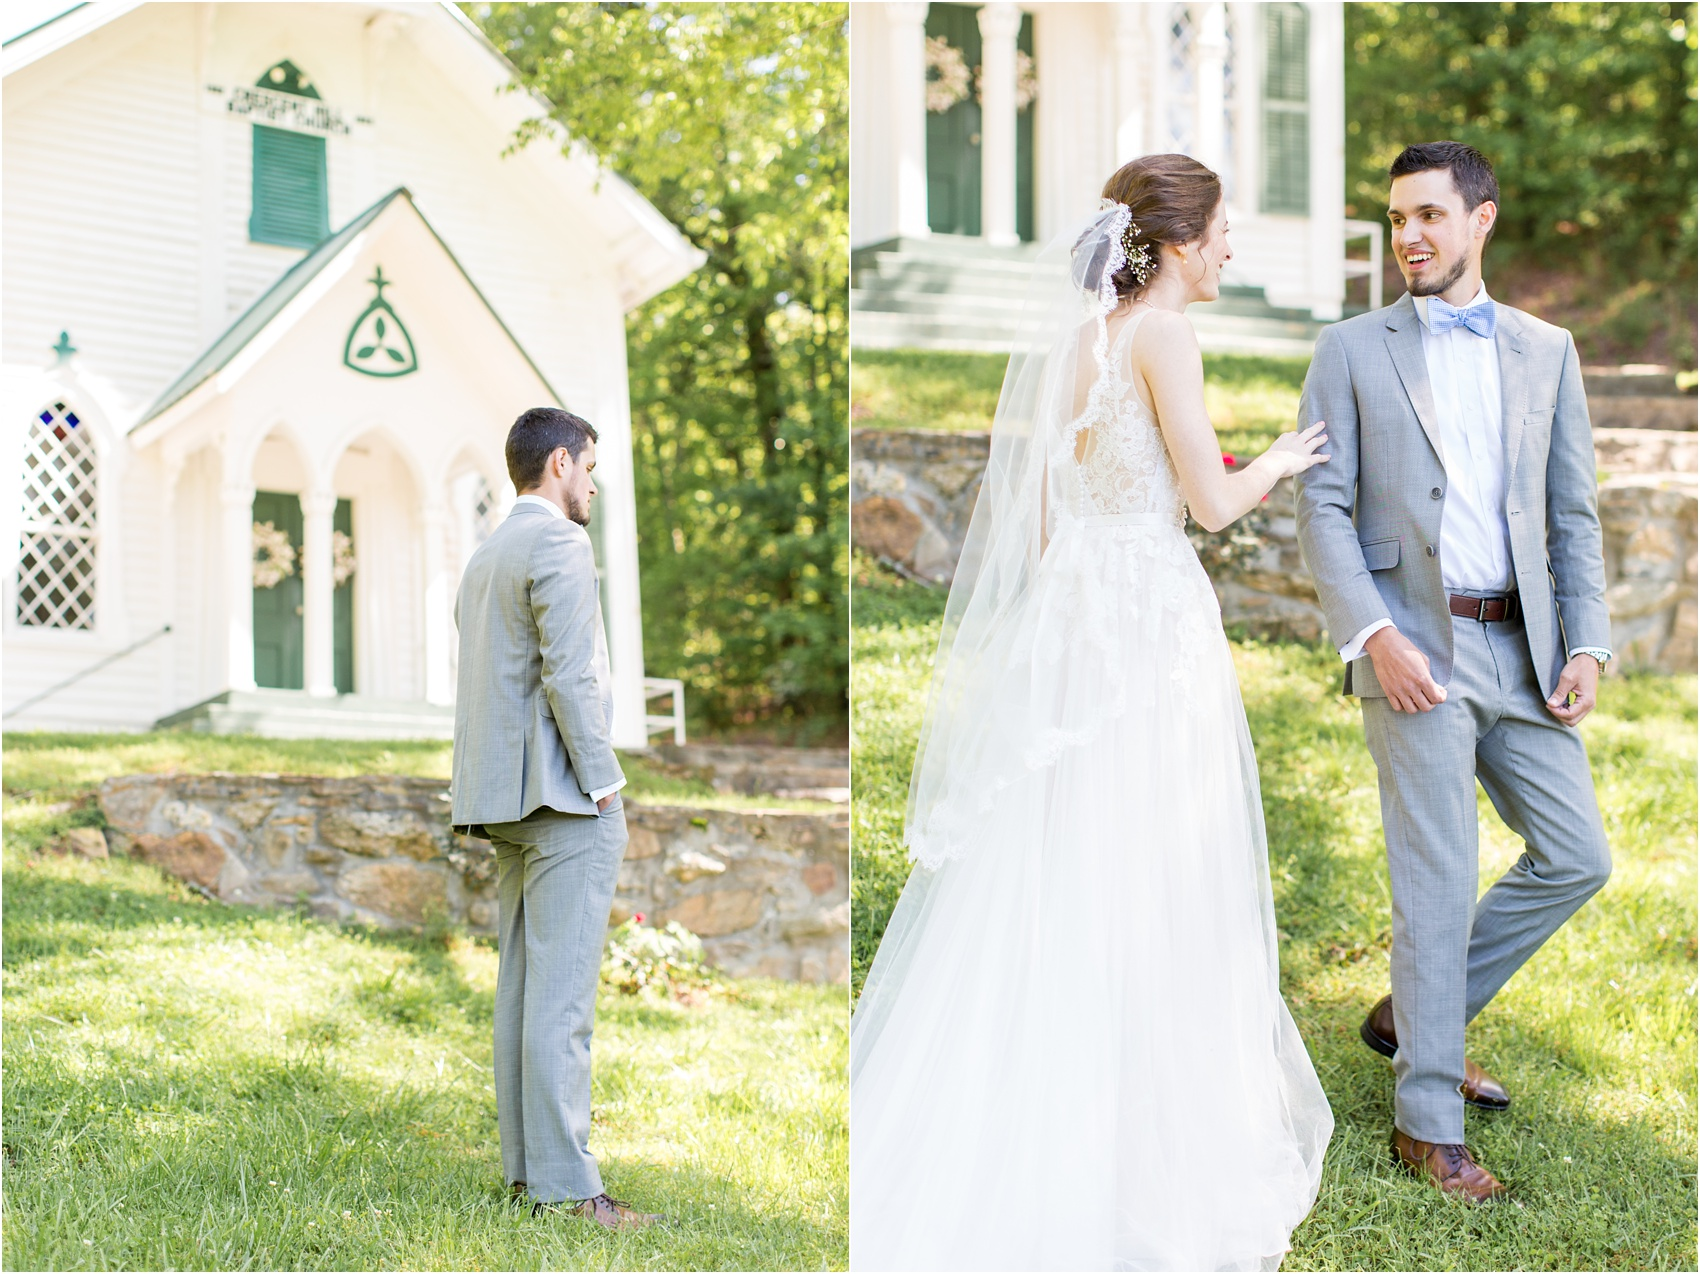 Savannah Eve Photography- Williams Wedding- Blog-12.jpg